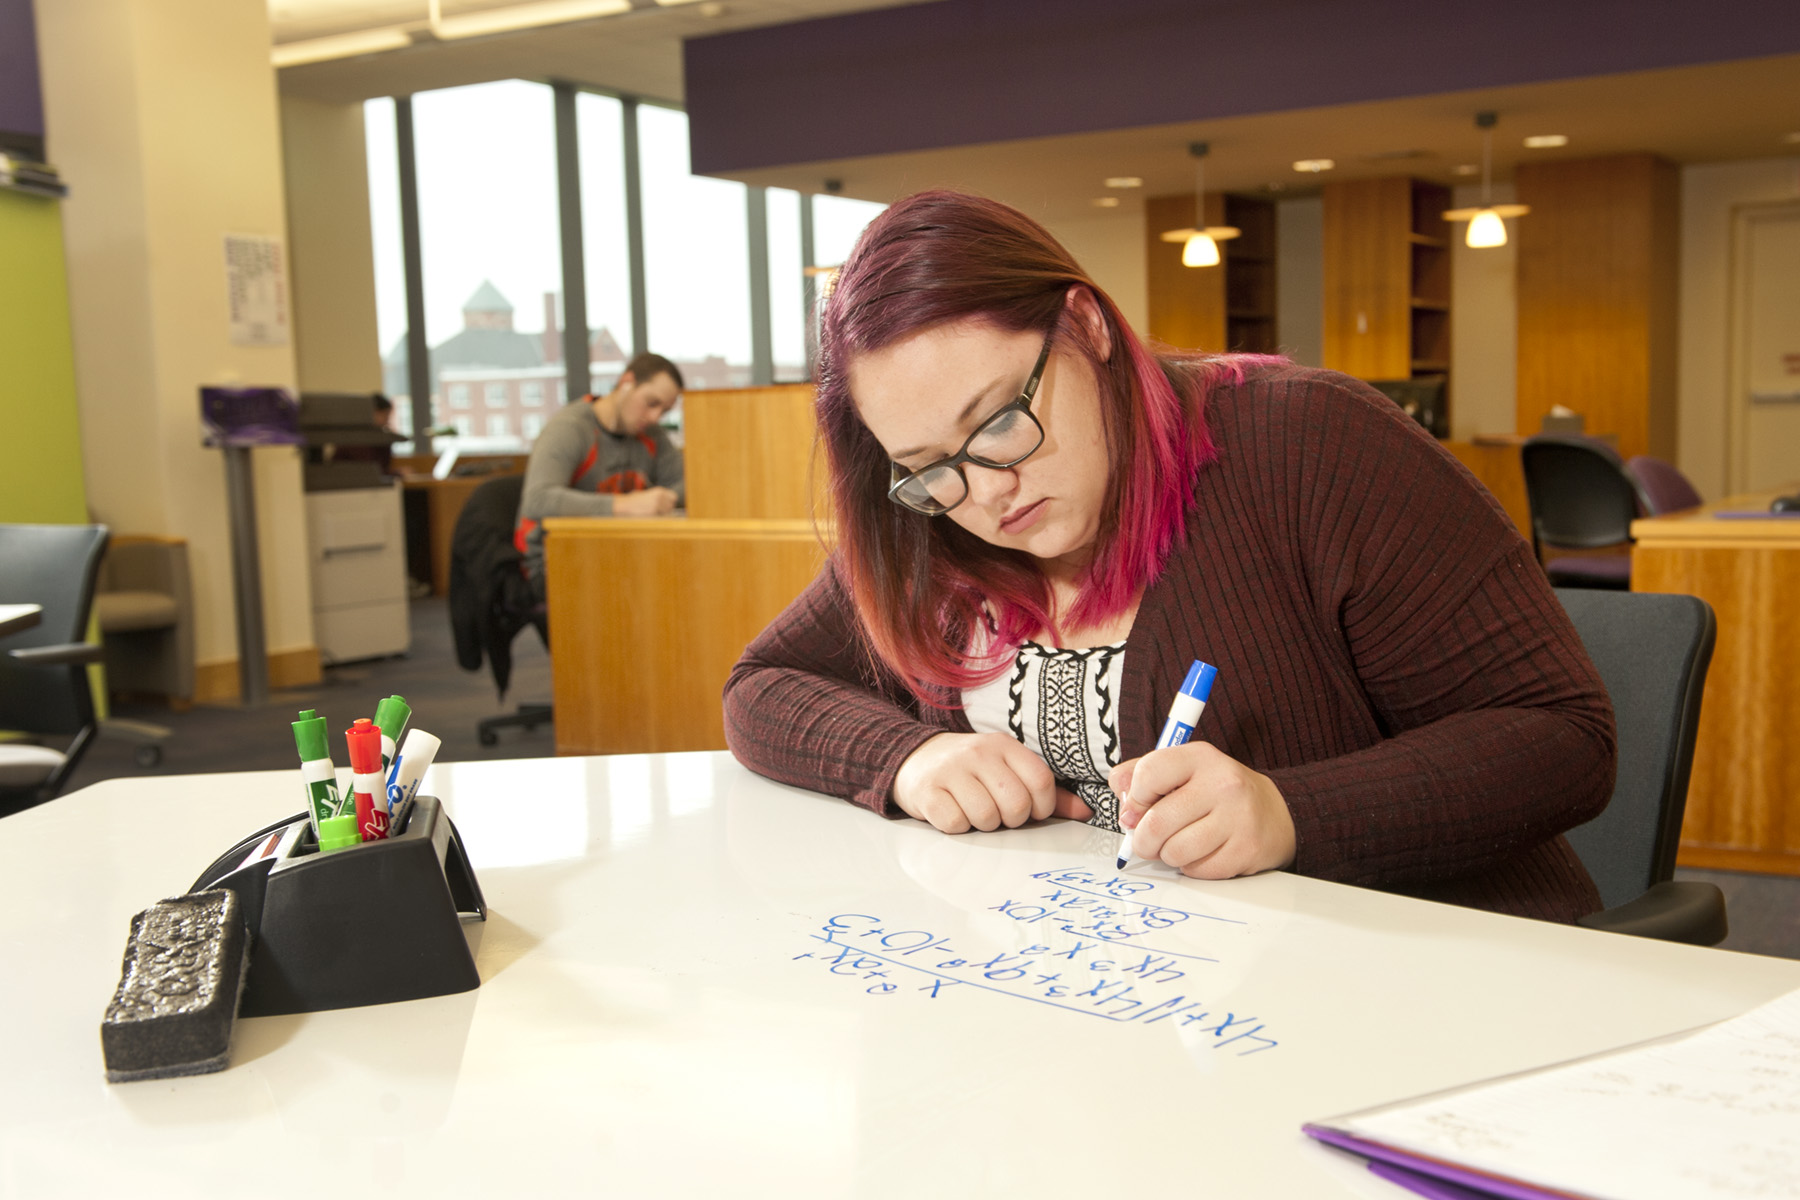 Mount Union student studying in the library